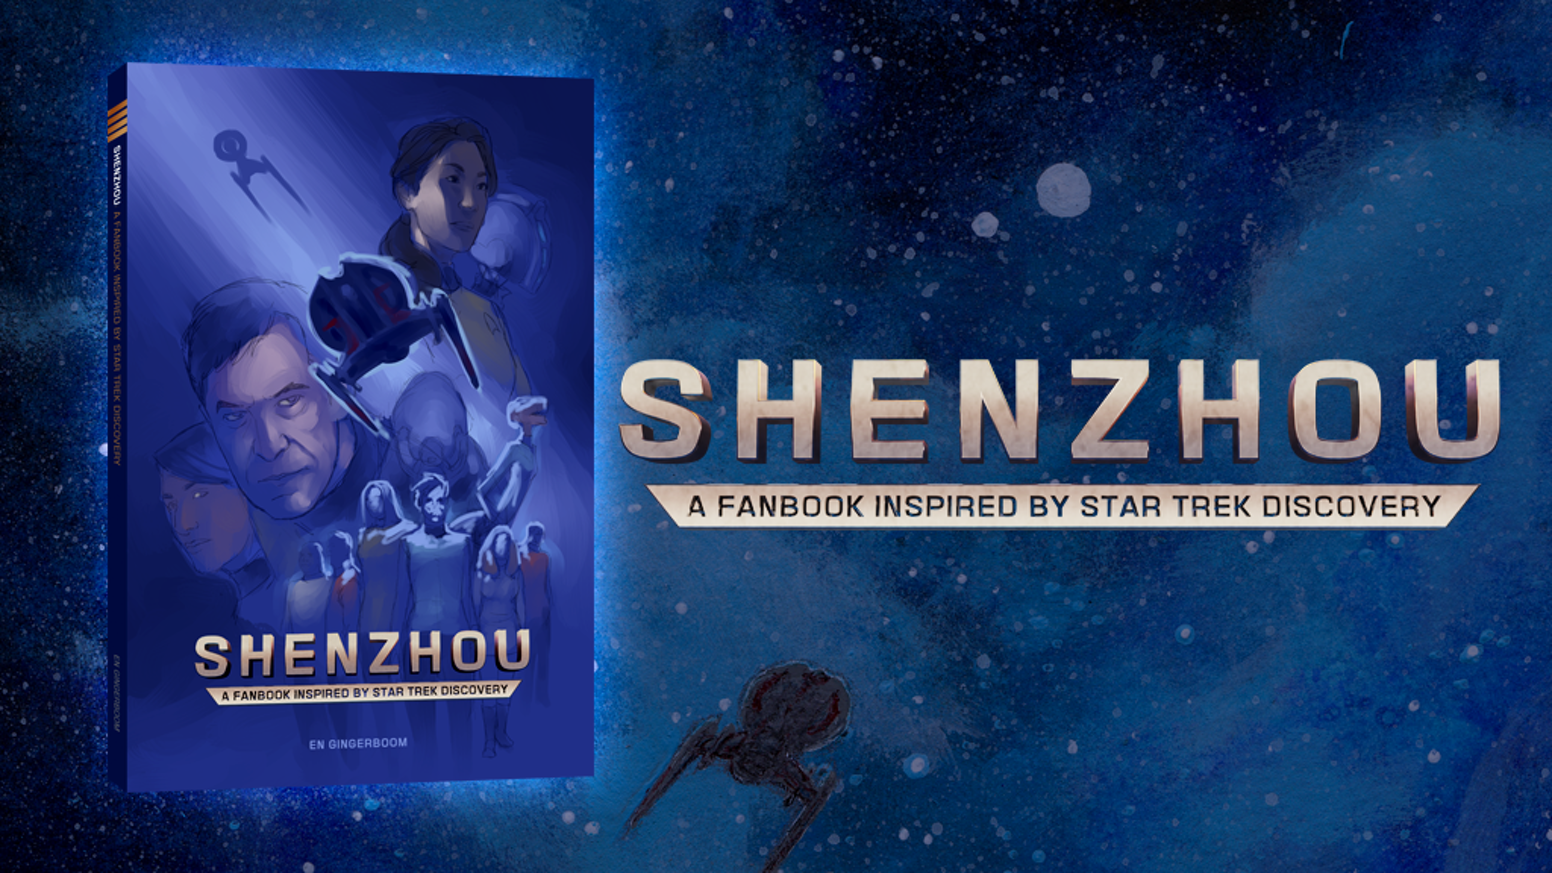 Shenzhou A Fanbook Inspired By Star Trek Discovery By En Gingerboom